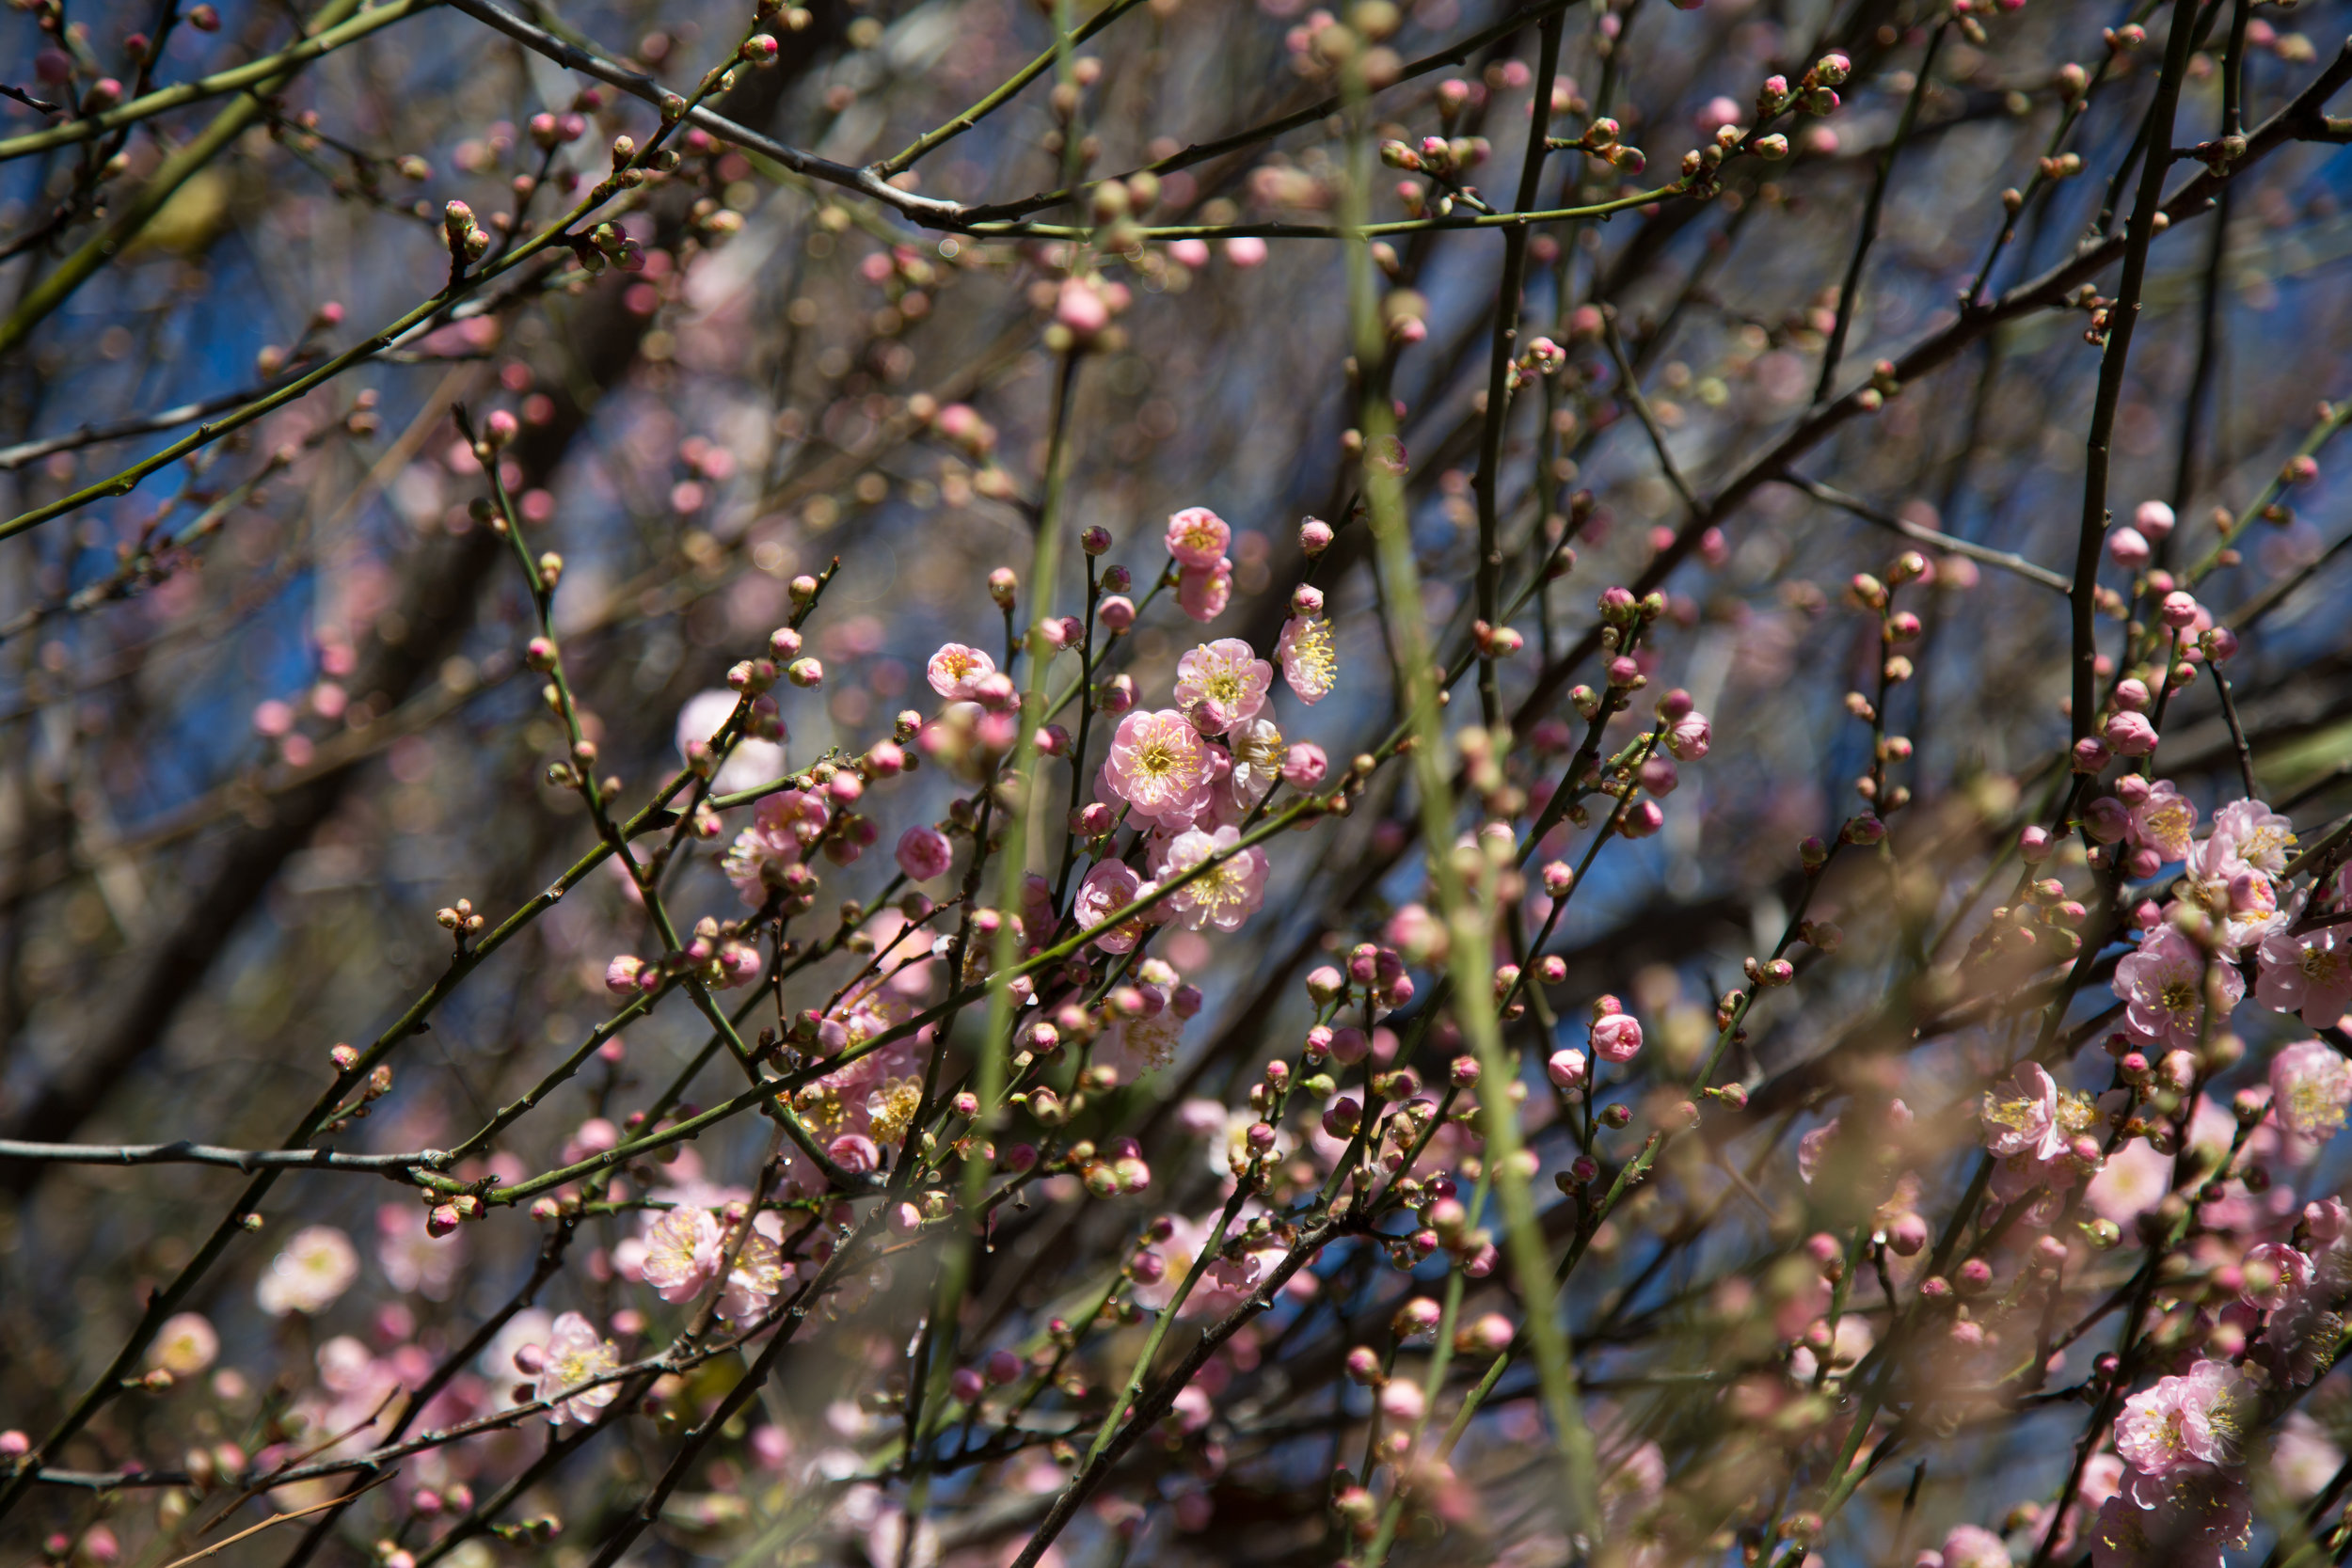 The Japanese Apricot is already starting to bloom. Soon it will be full of tiny pink flowers.